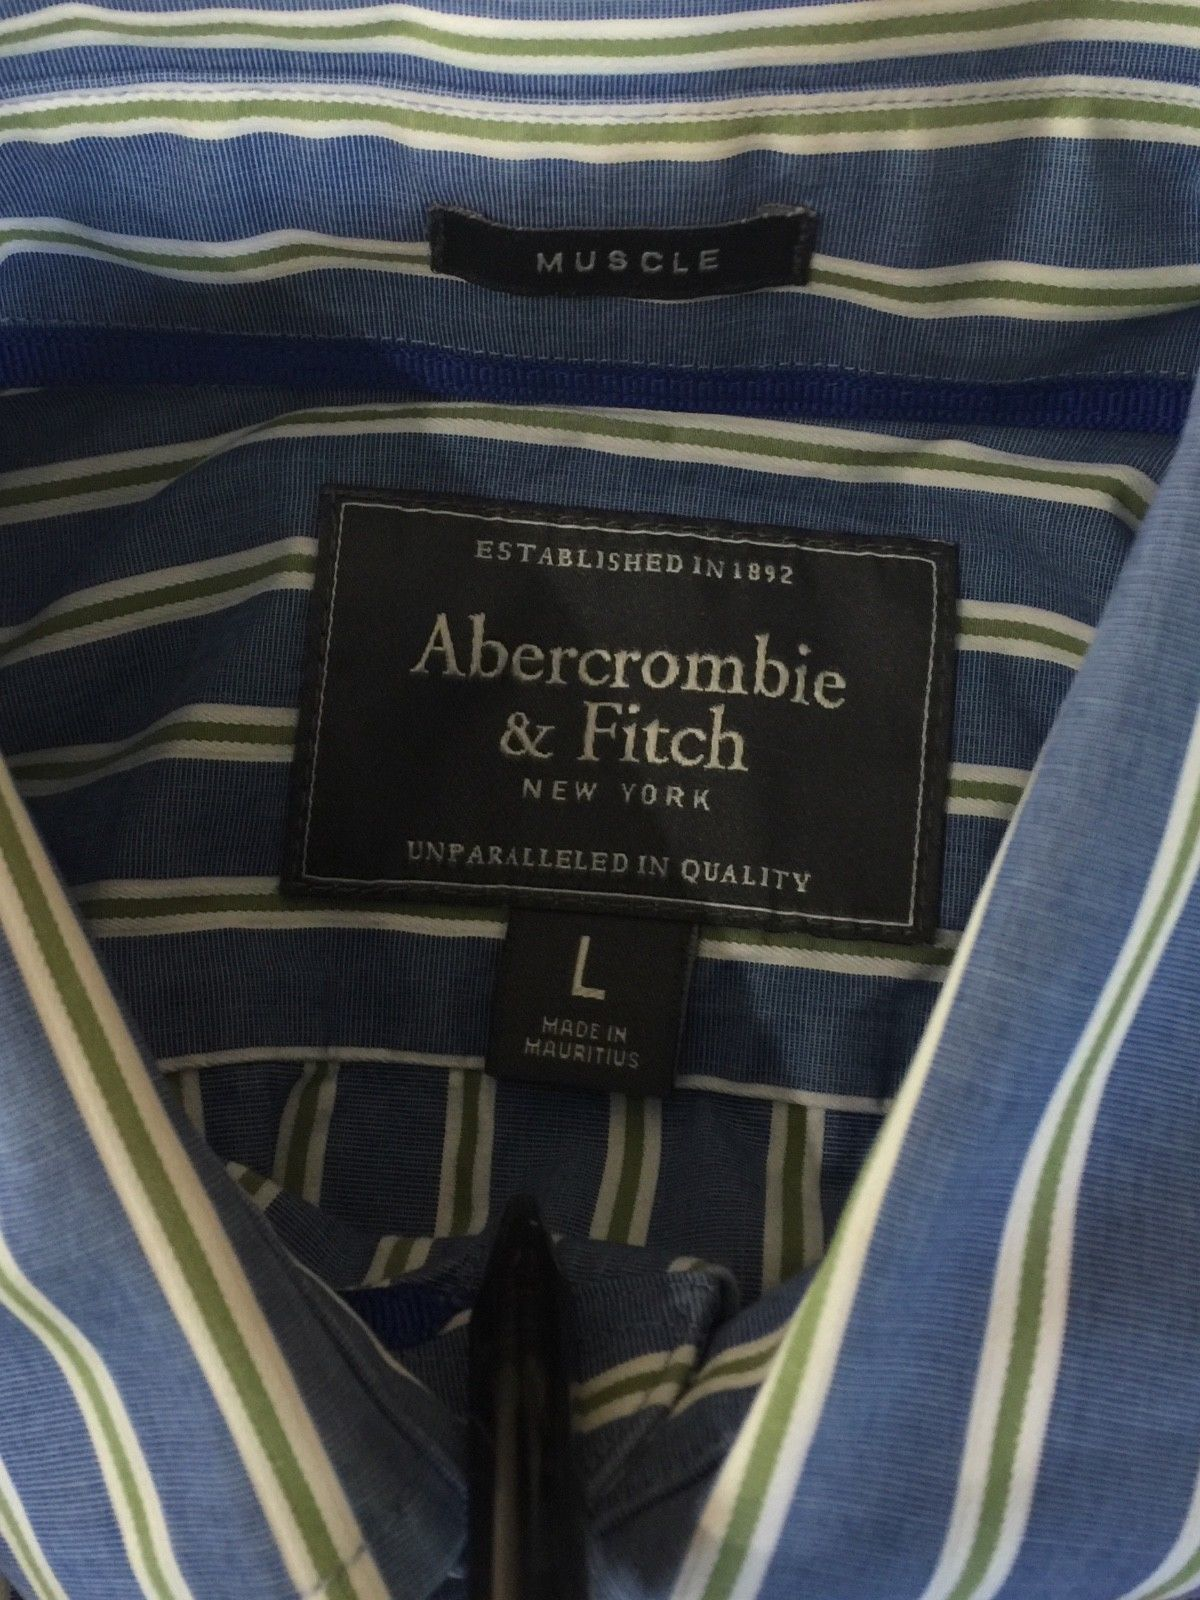 Abercrombie & Fitch Muscle Long Sleeve Button Down Shirt Blue Stripe Men's Large image 7